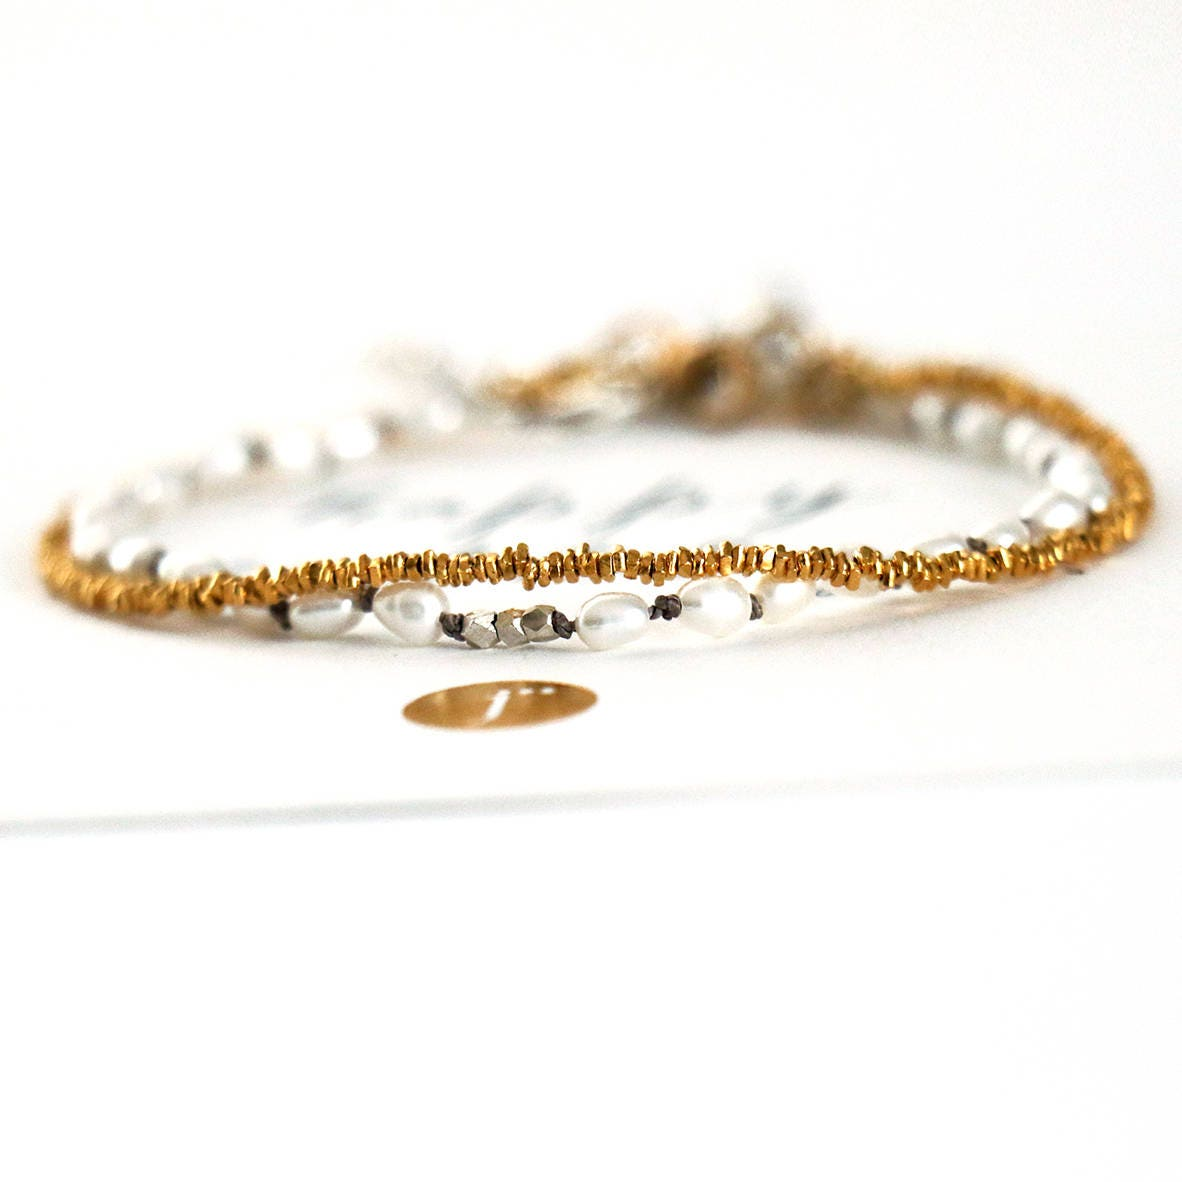 jewelry pictures productimage fashion gold photos bracelet in made lkvmyilxxzco china